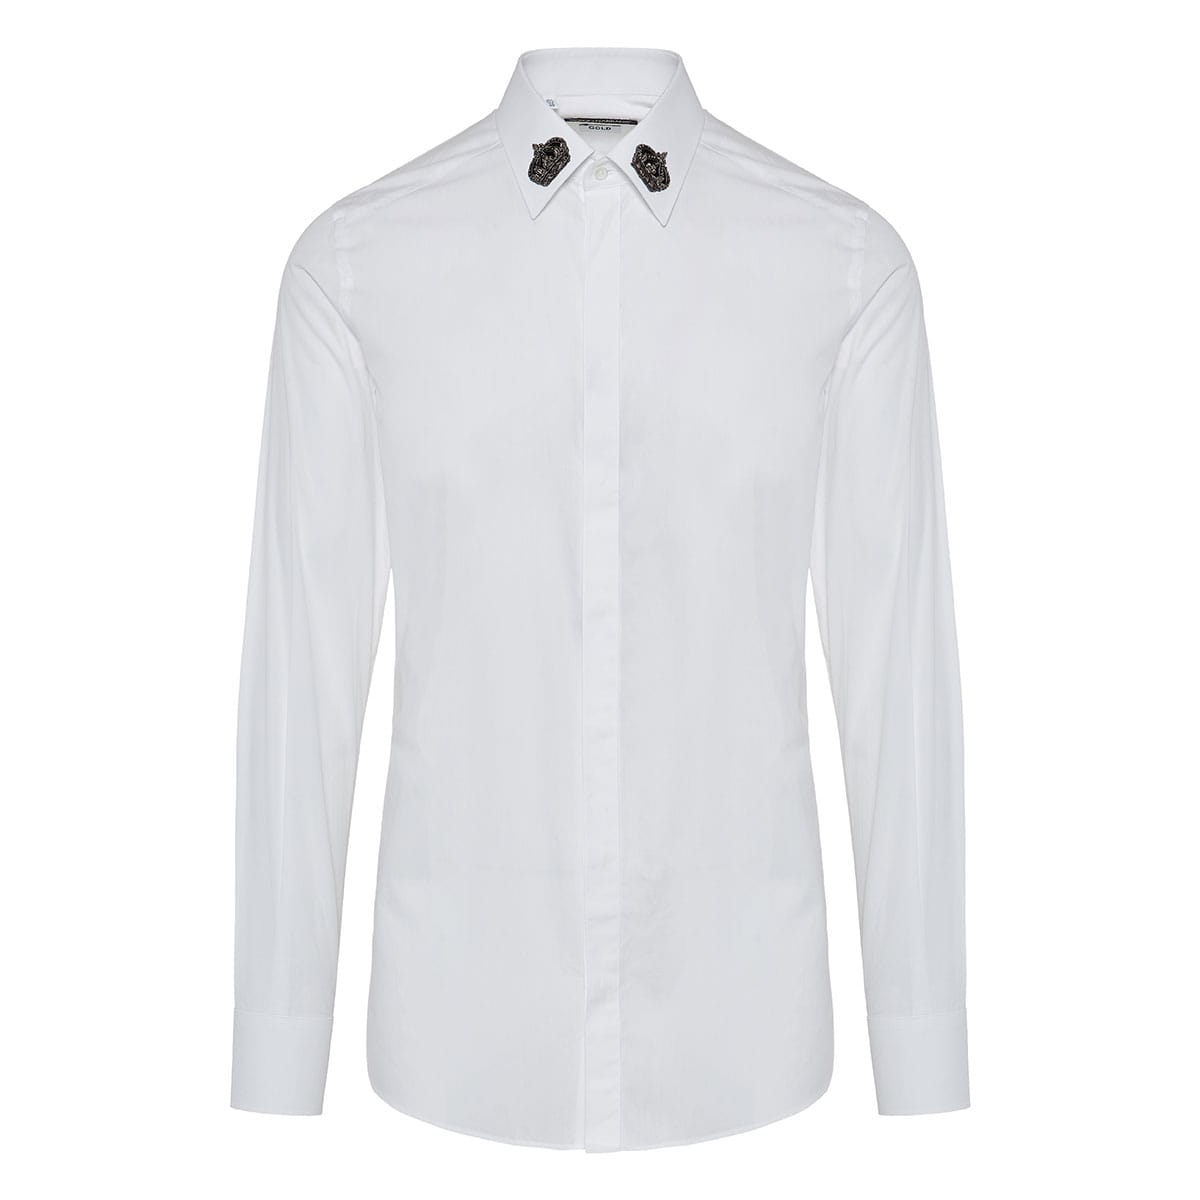 Poplin shirt with crown patches